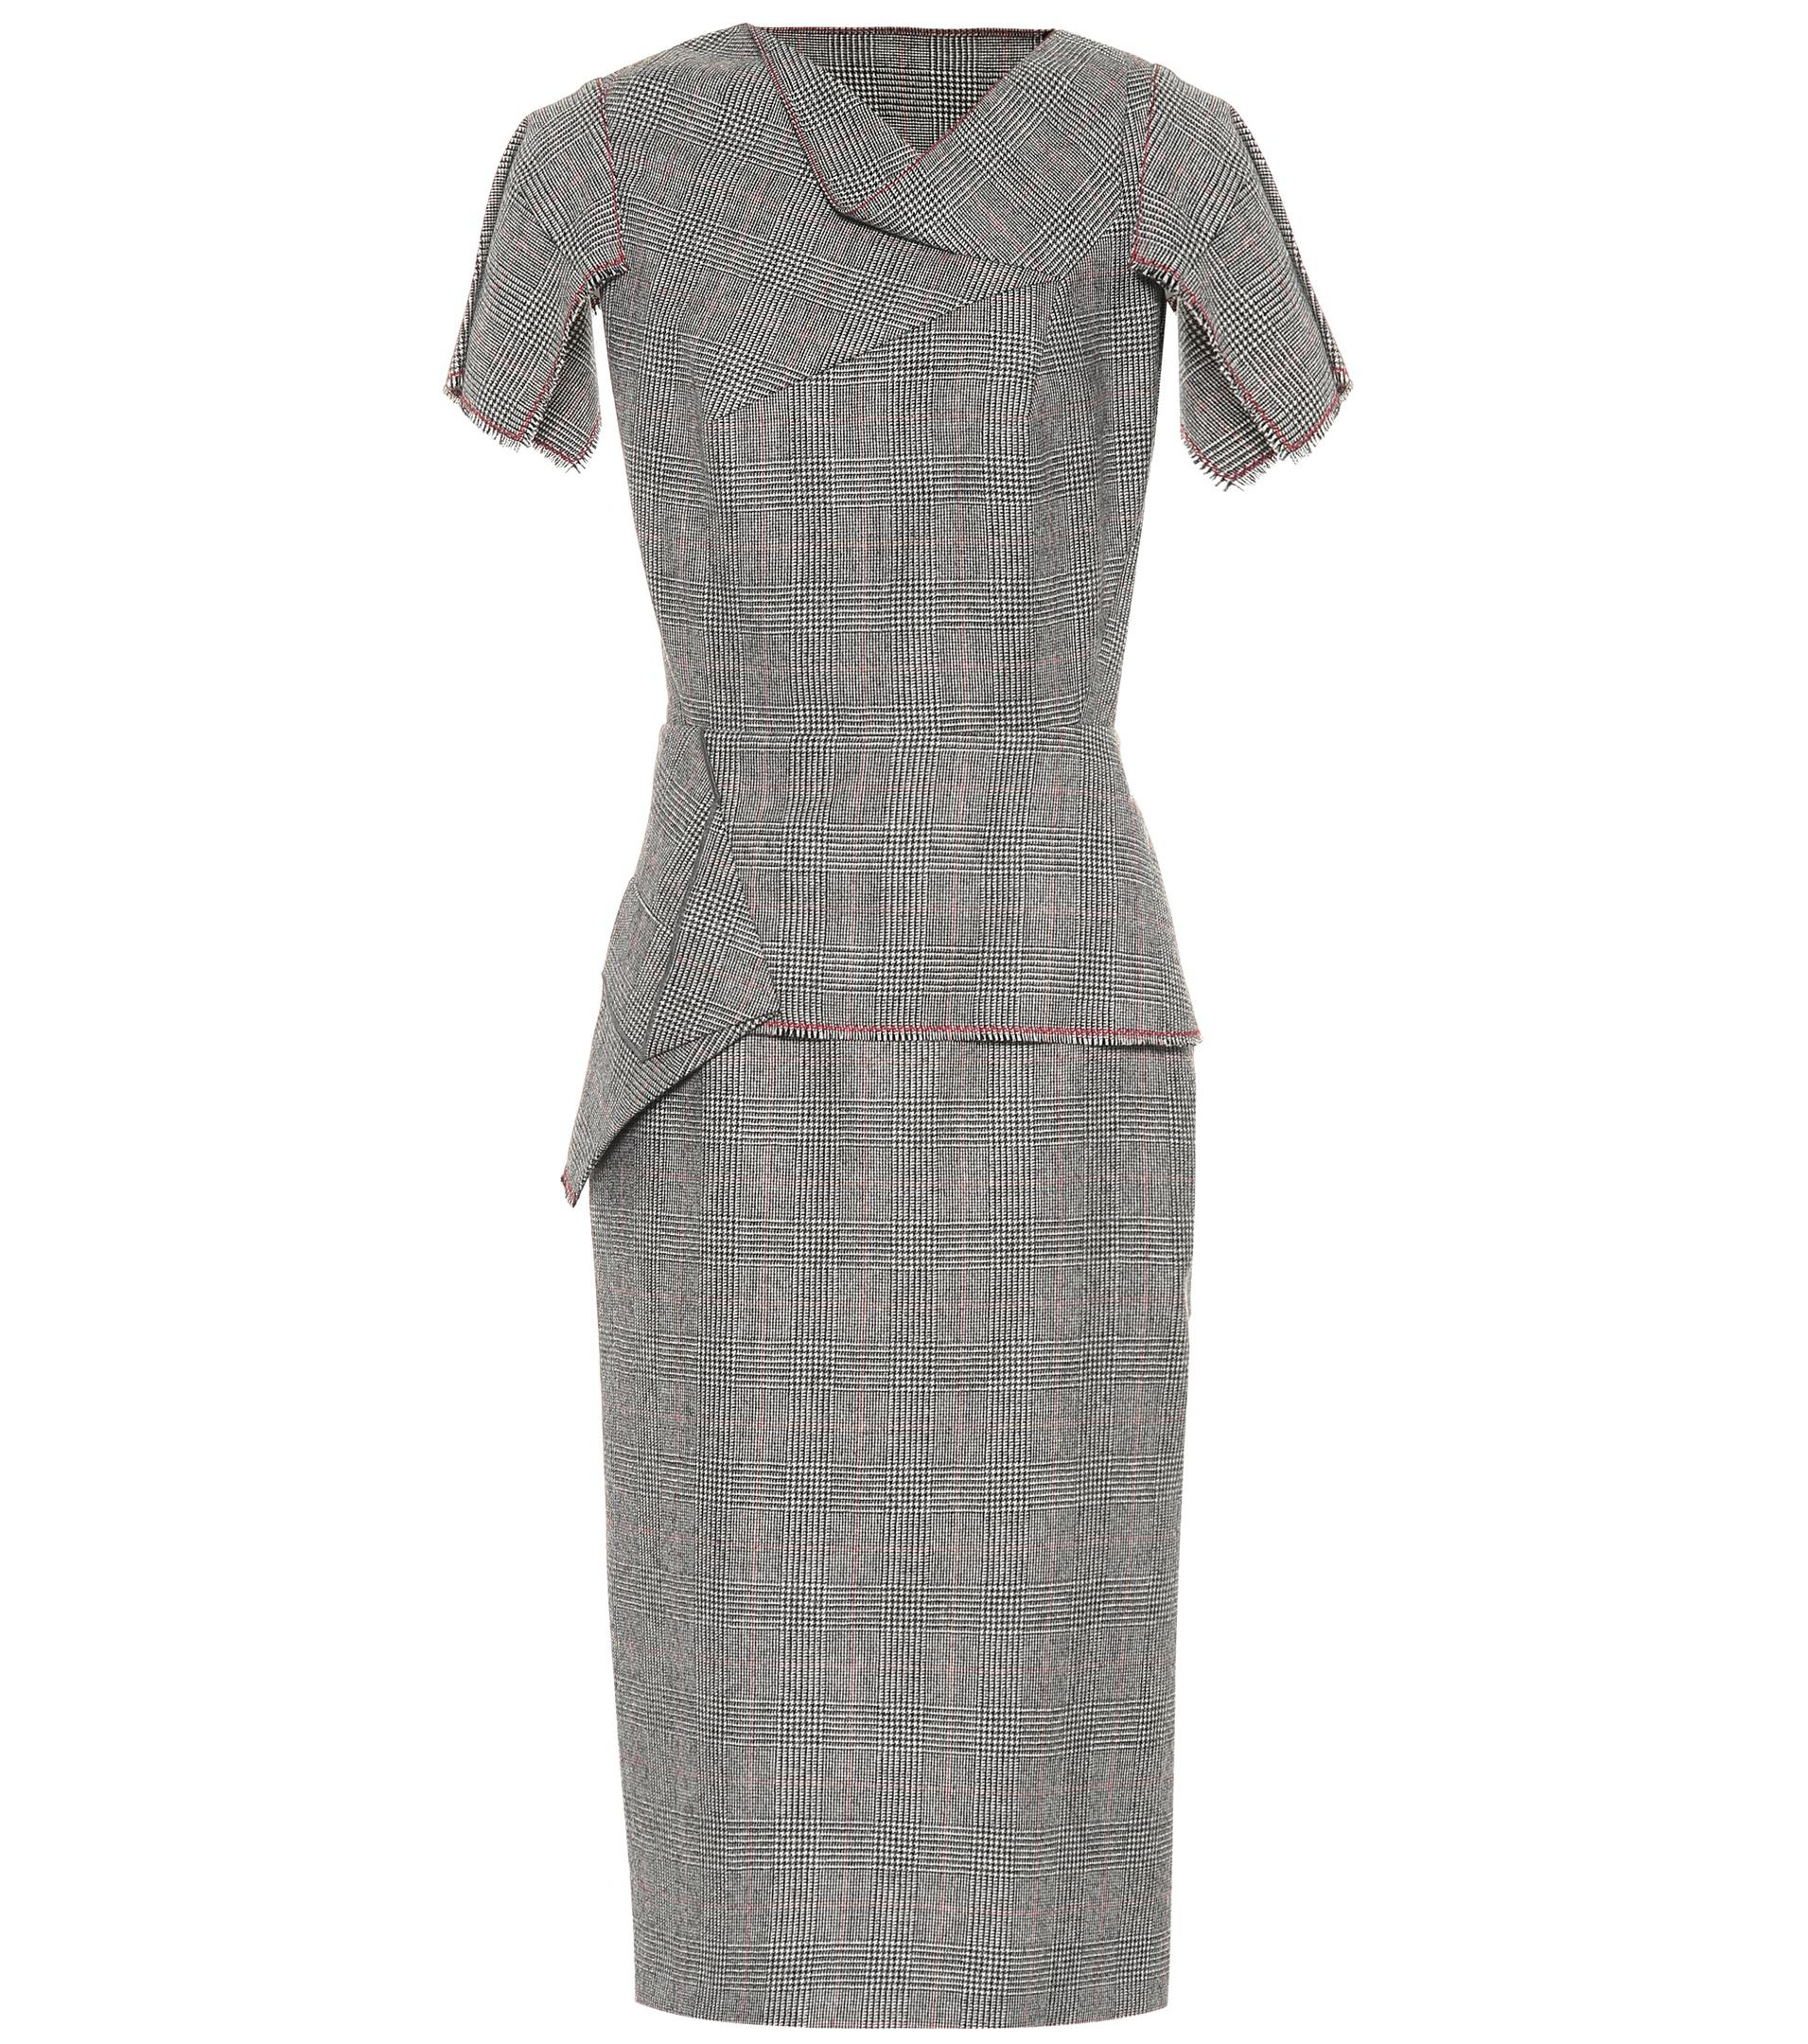 56f4edf0431 Lyst - Roland Mouret Checked Wool Midi Dress in Gray - Save 36%